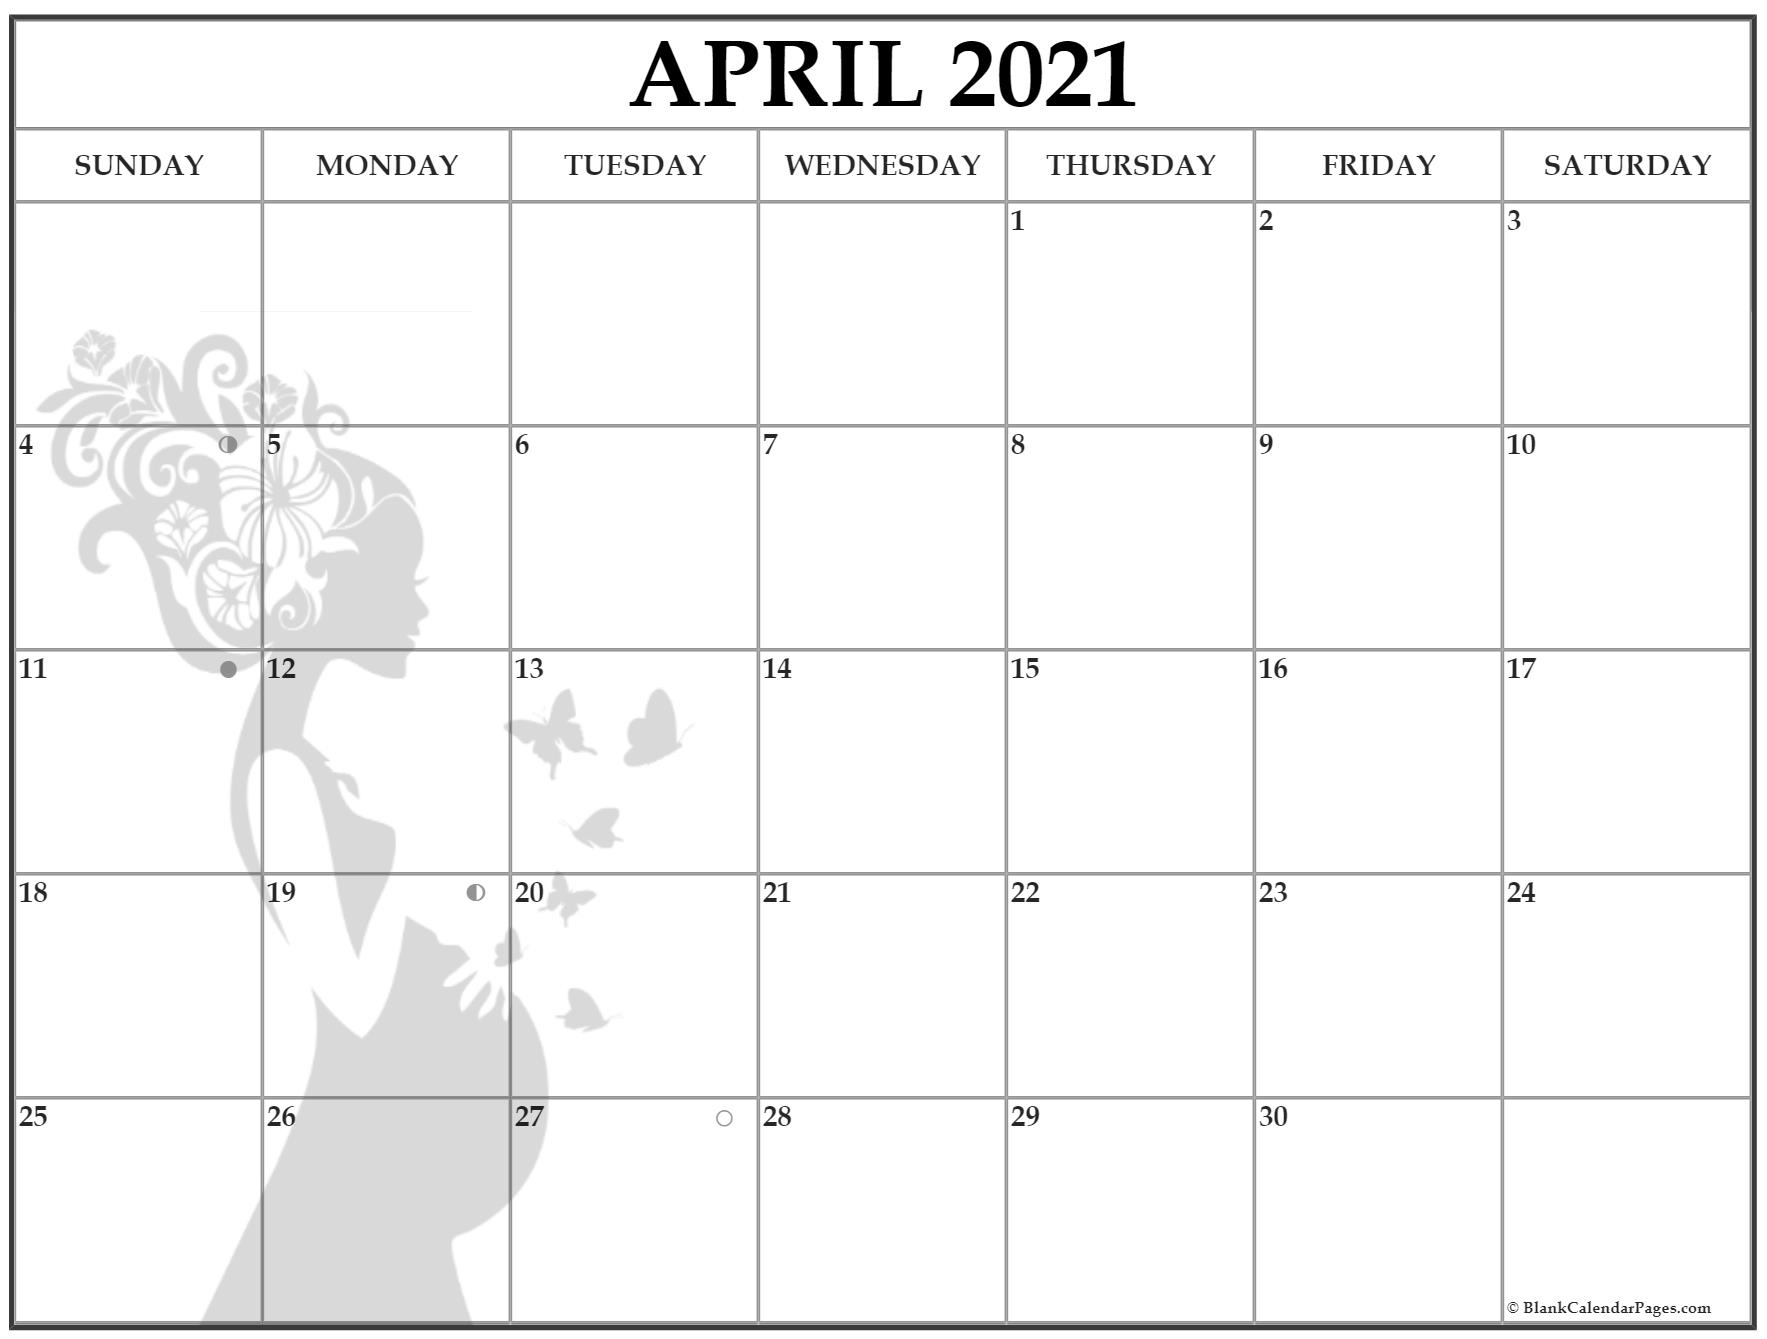 April 2021 Pregnancy Calendar | Fertility Calendar